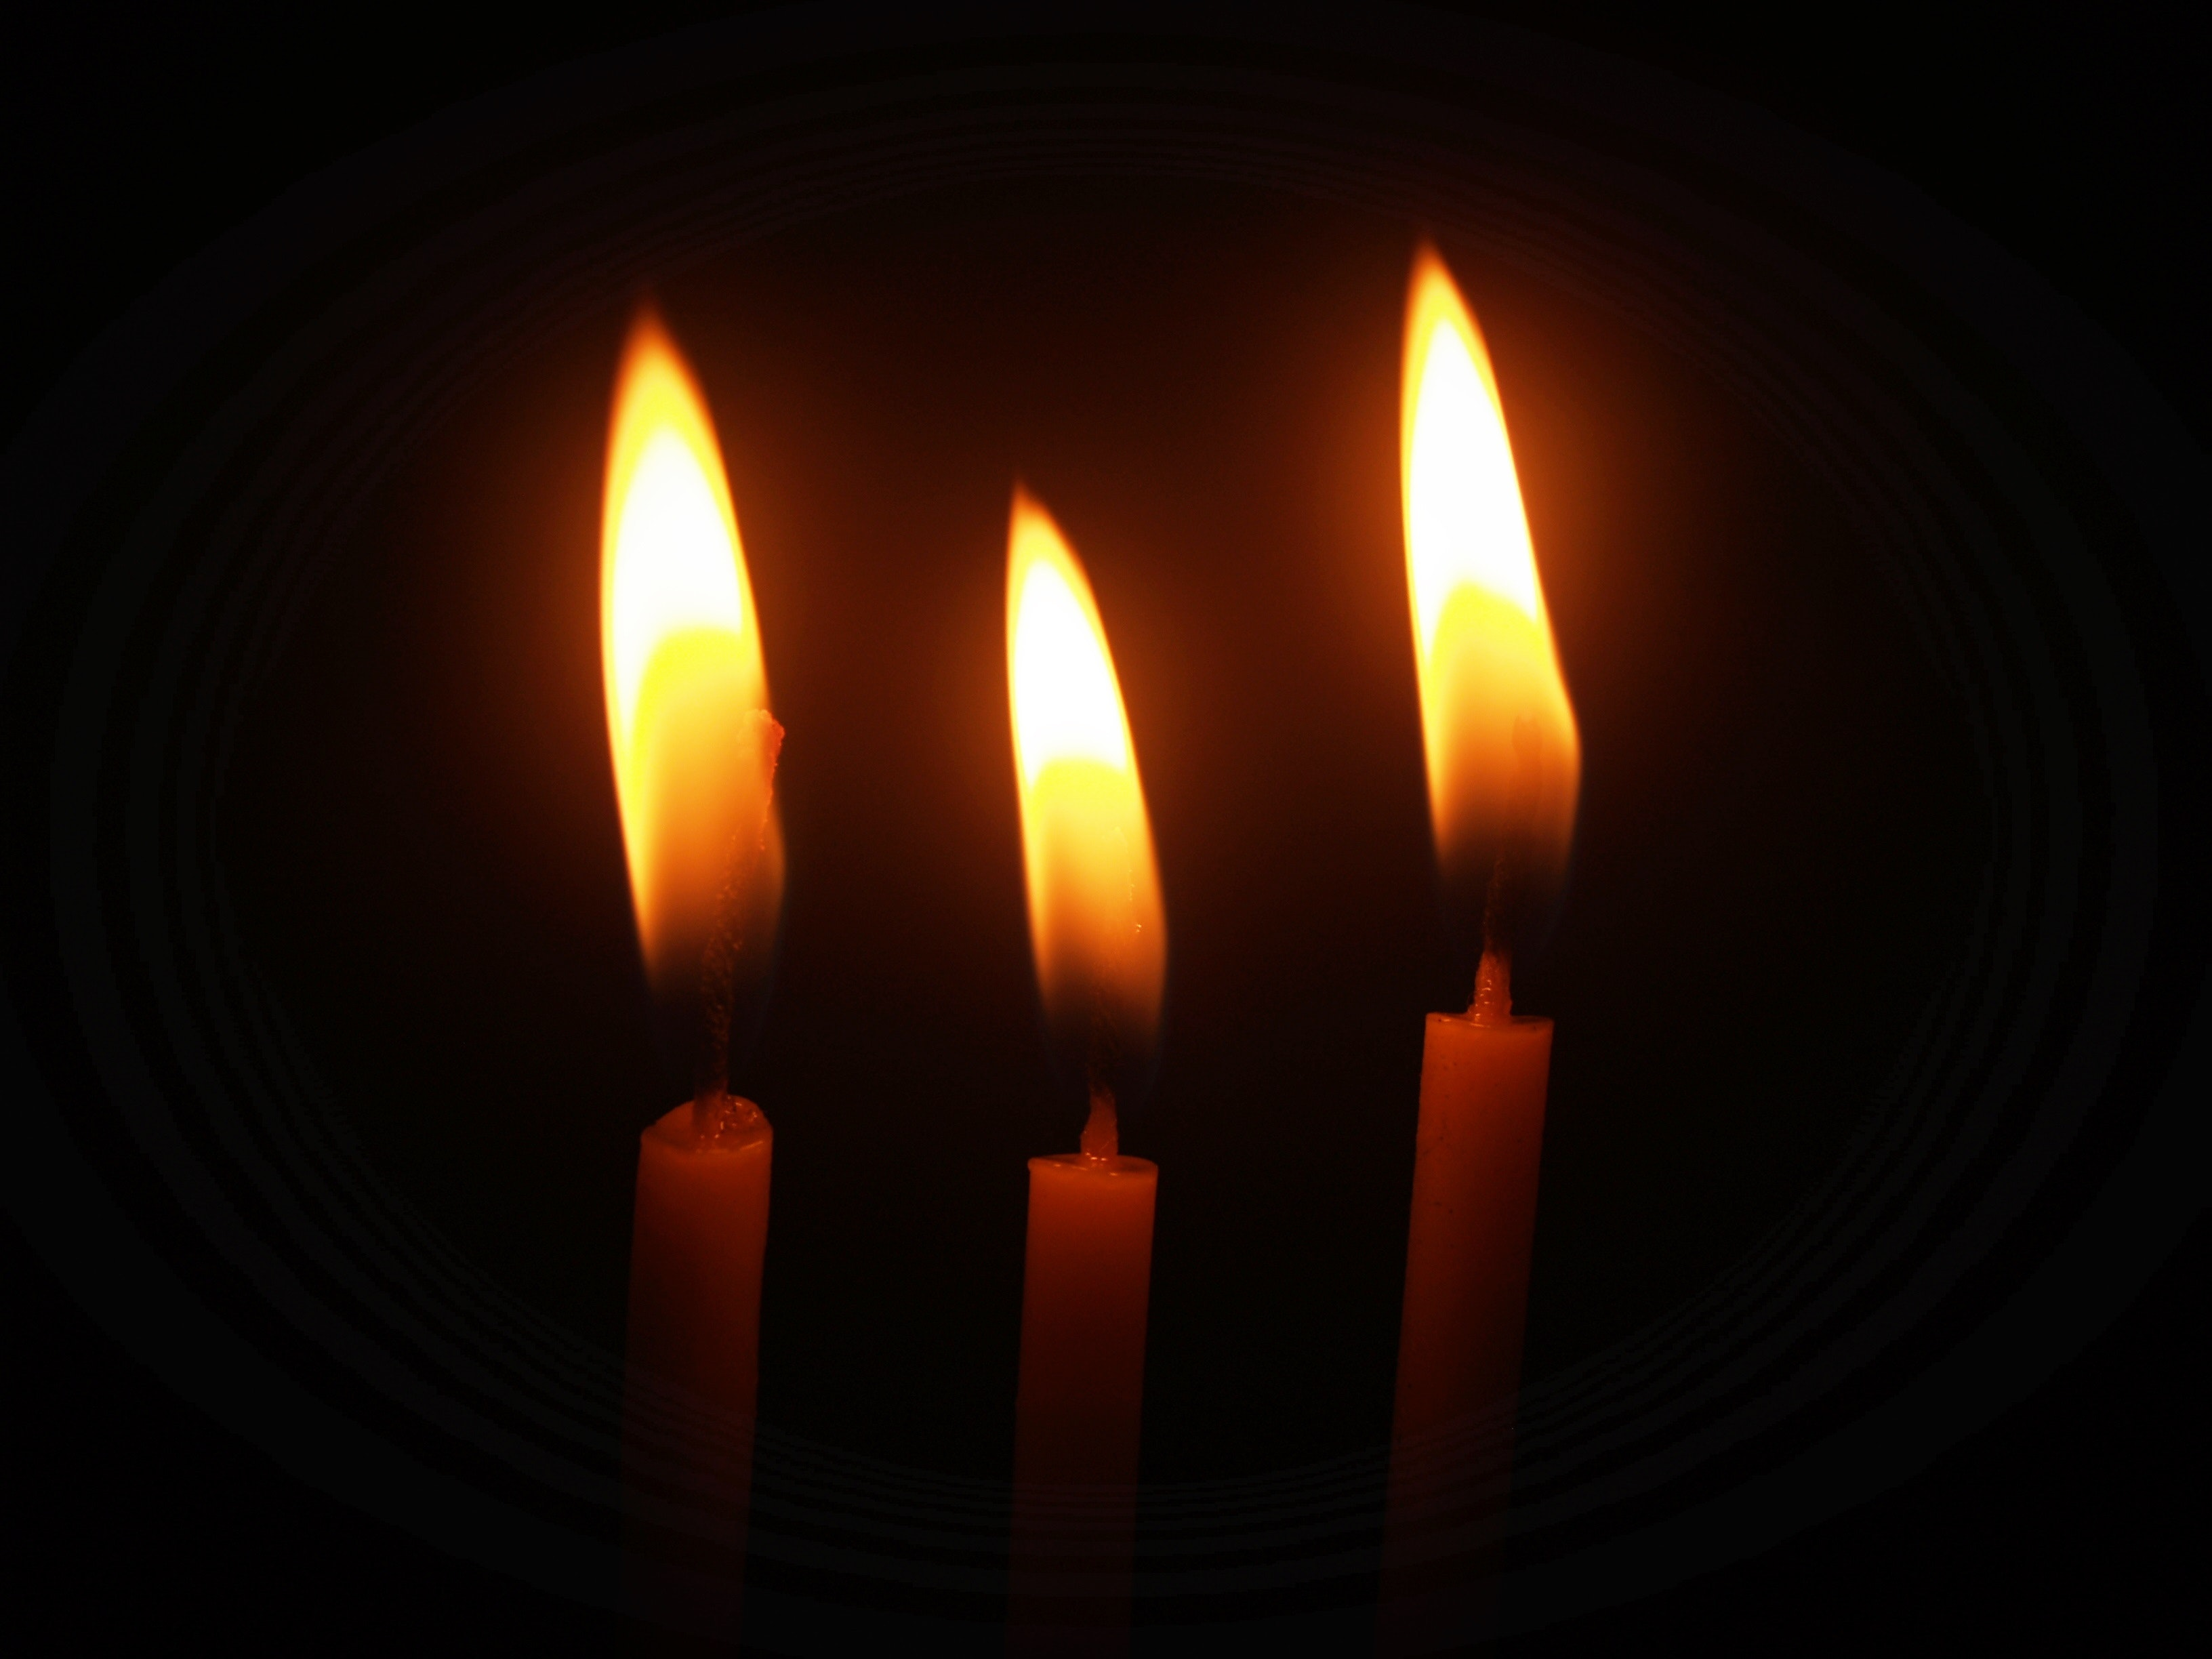 Lighted Candles, Burning, Candlelights, Candles, Close-up, HQ Photo